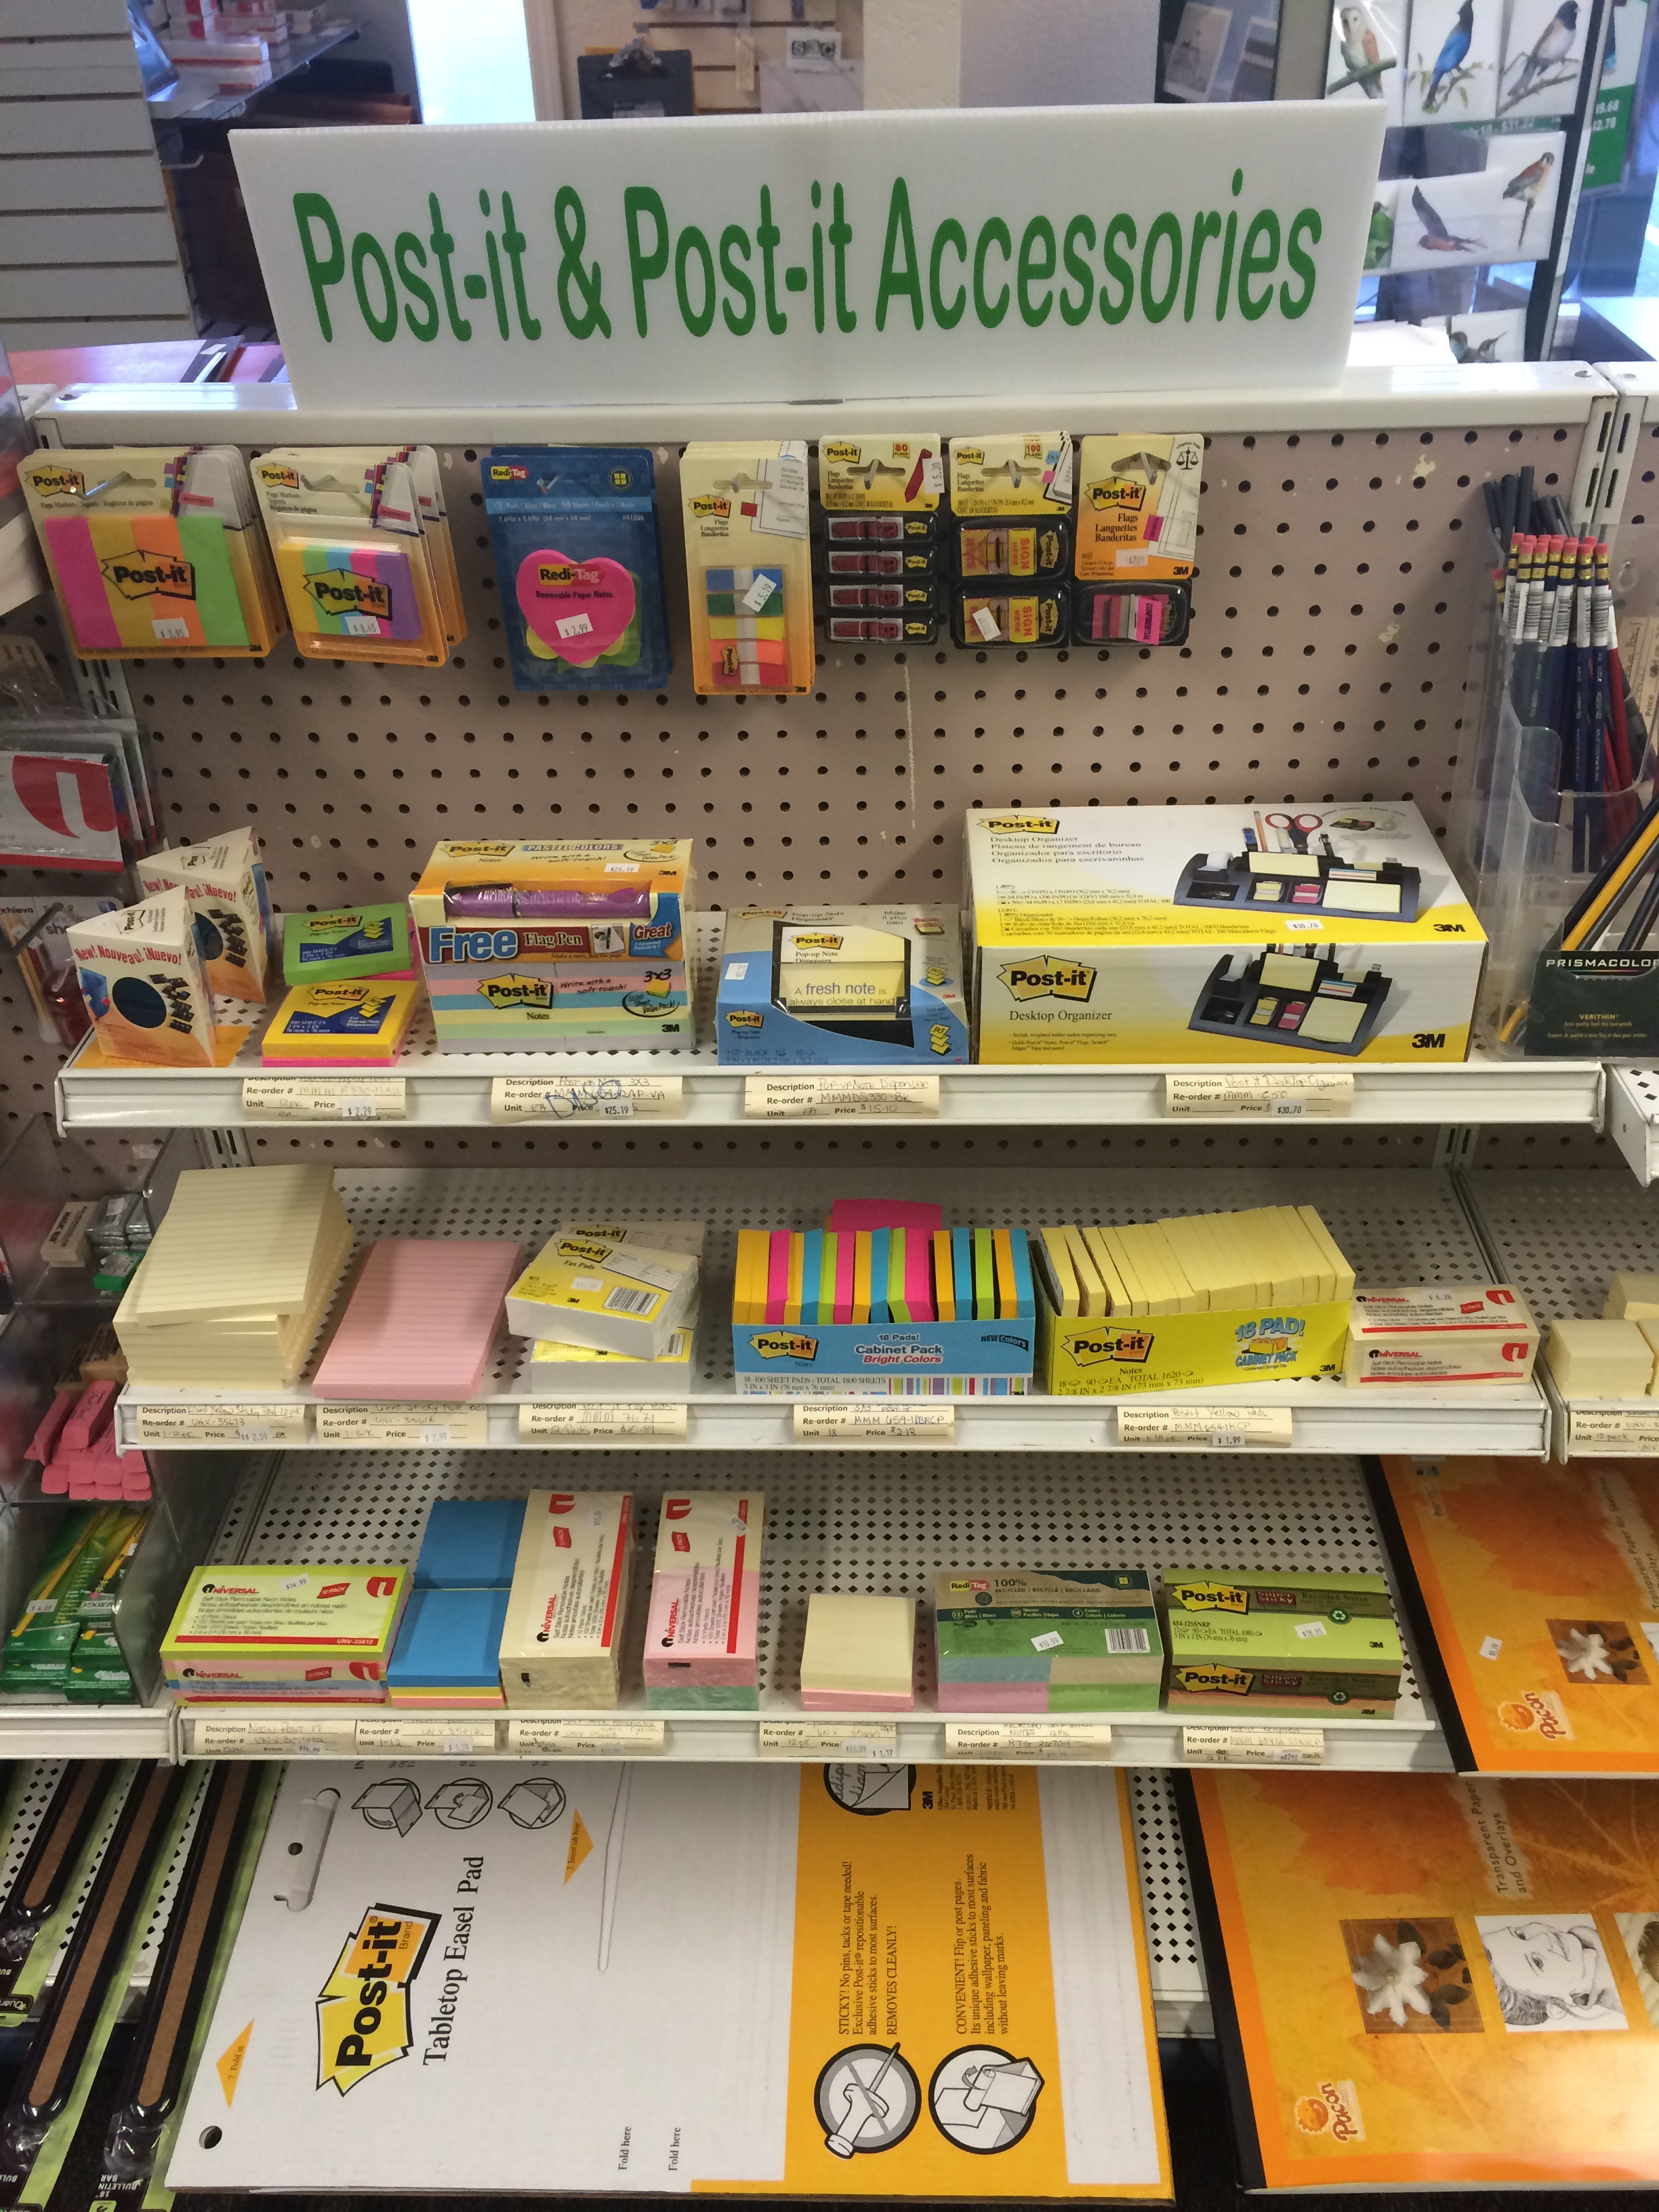 Post-it notes & accessories